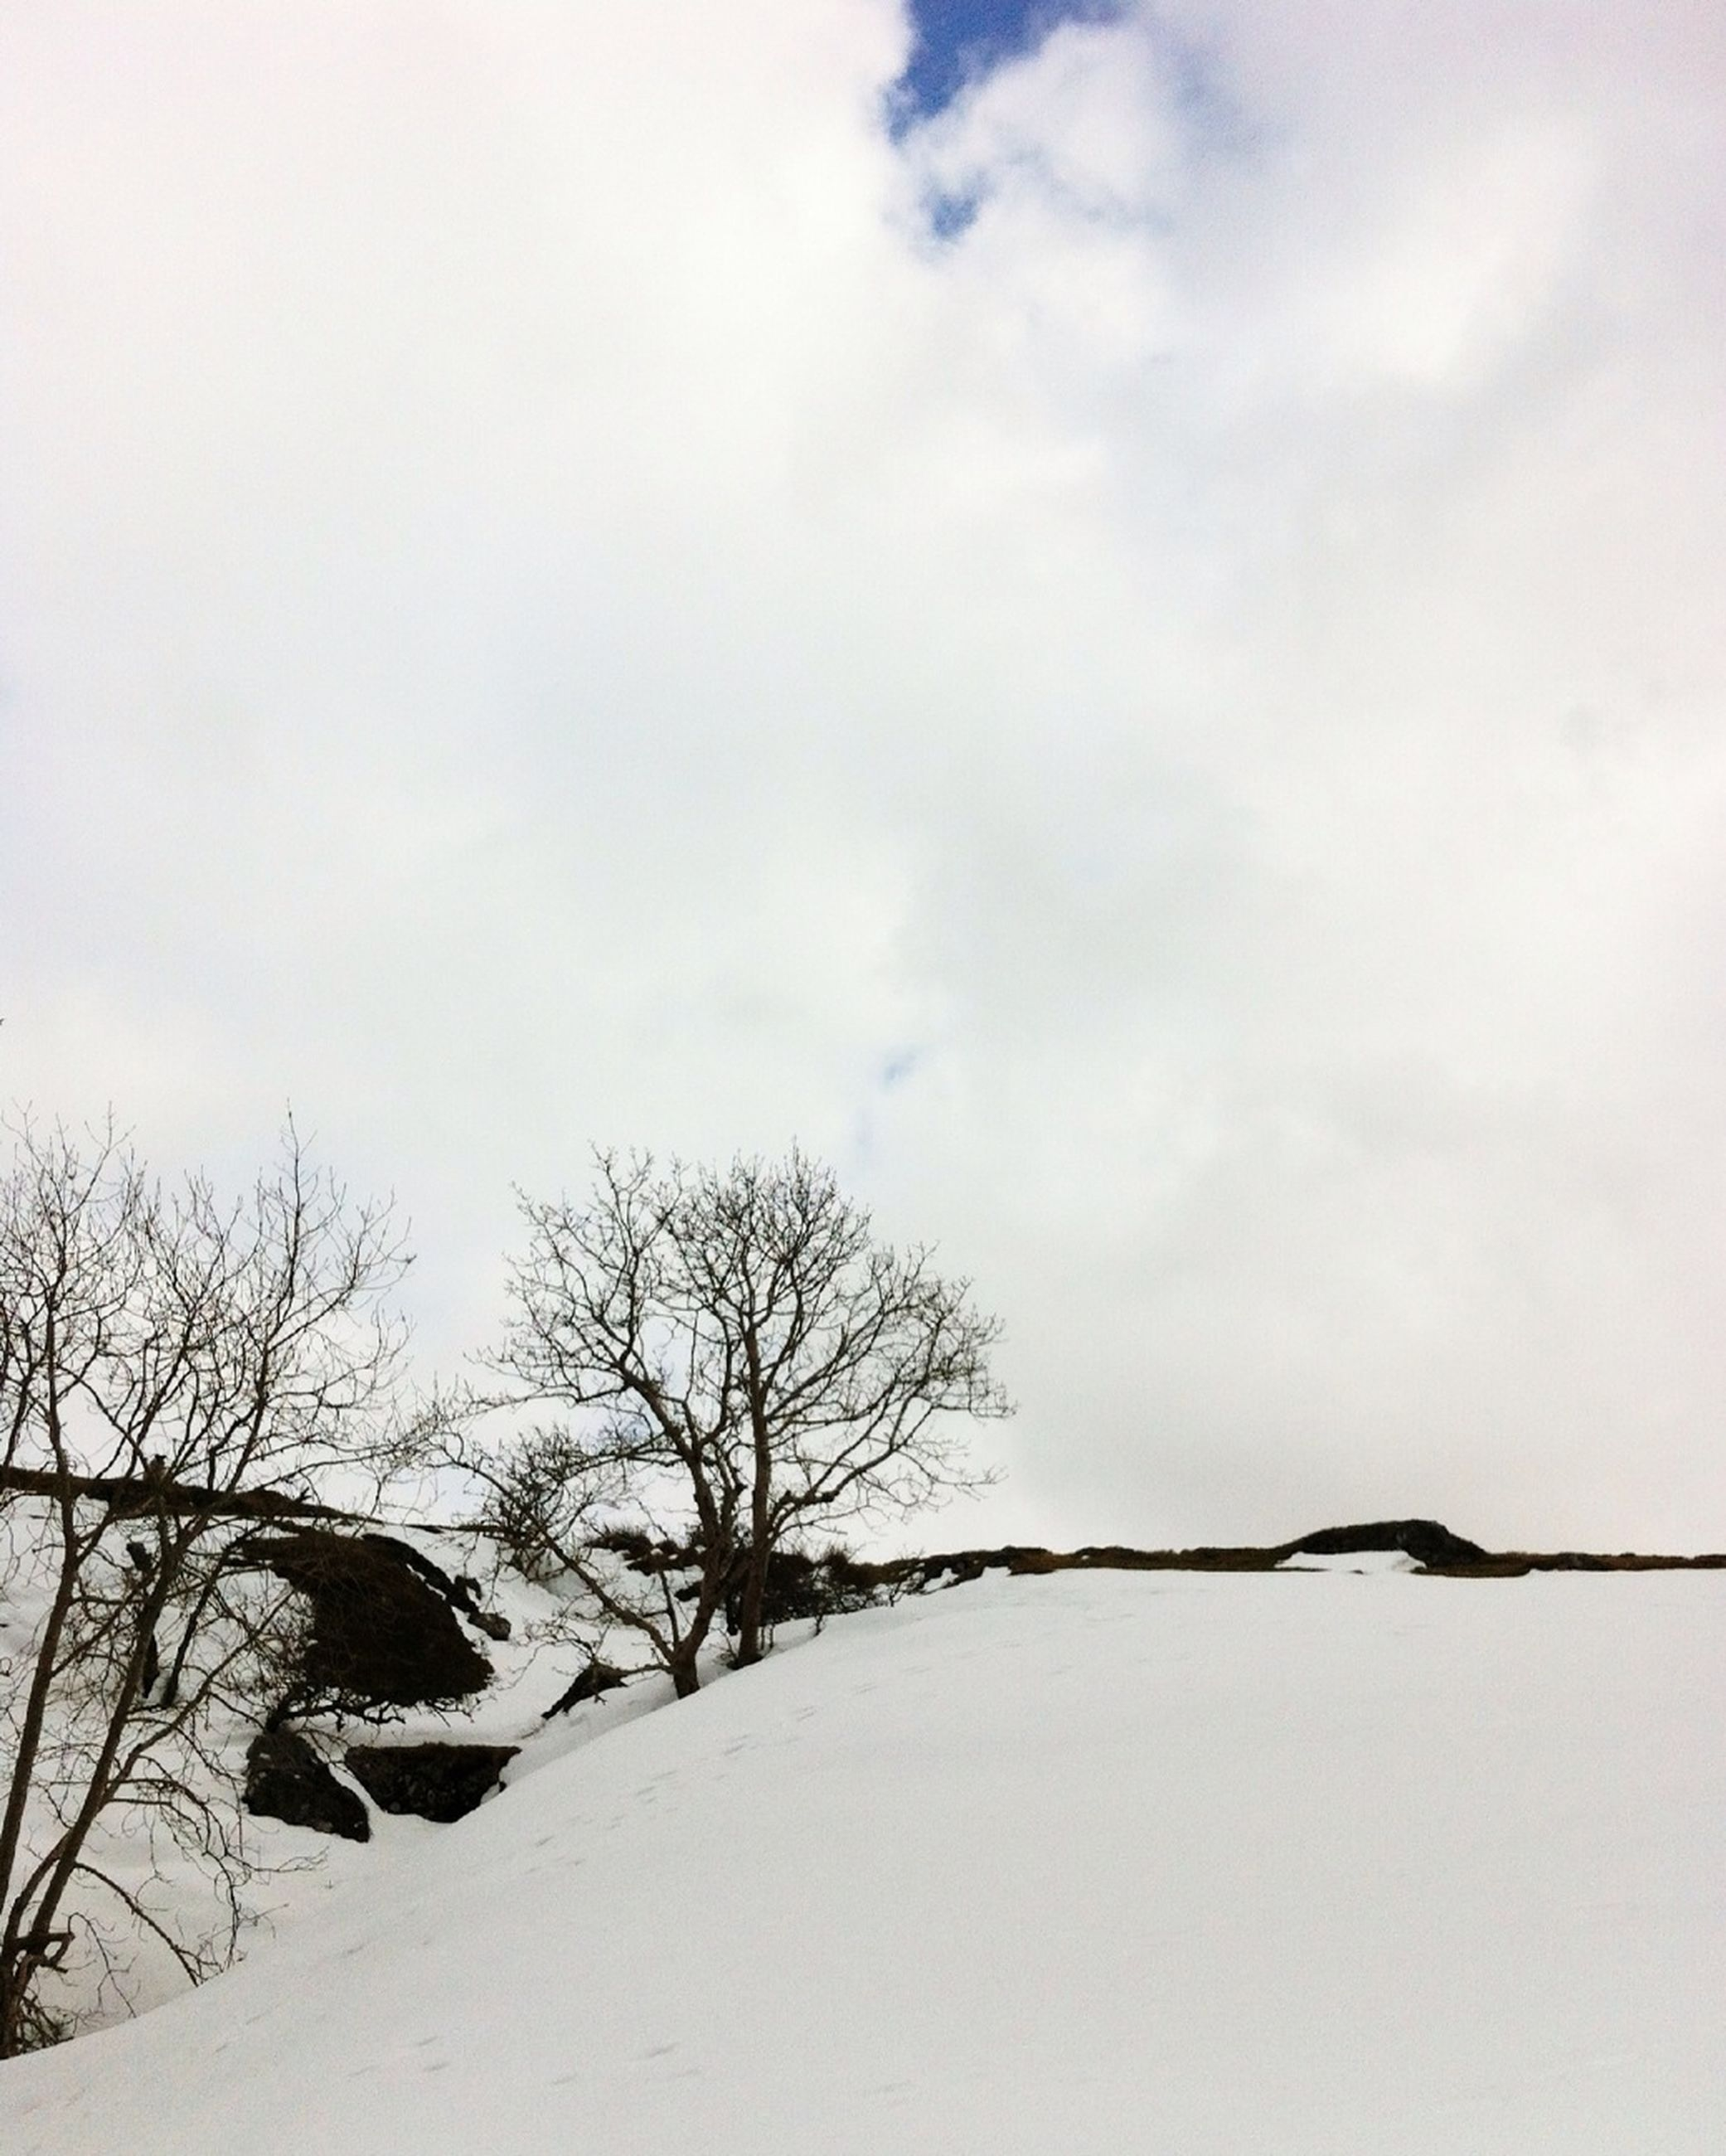 bare tree, snow, winter, tree, branch, sky, low angle view, cold temperature, nature, tranquility, weather, season, beauty in nature, tranquil scene, covering, built structure, outdoors, day, cloud - sky, no people